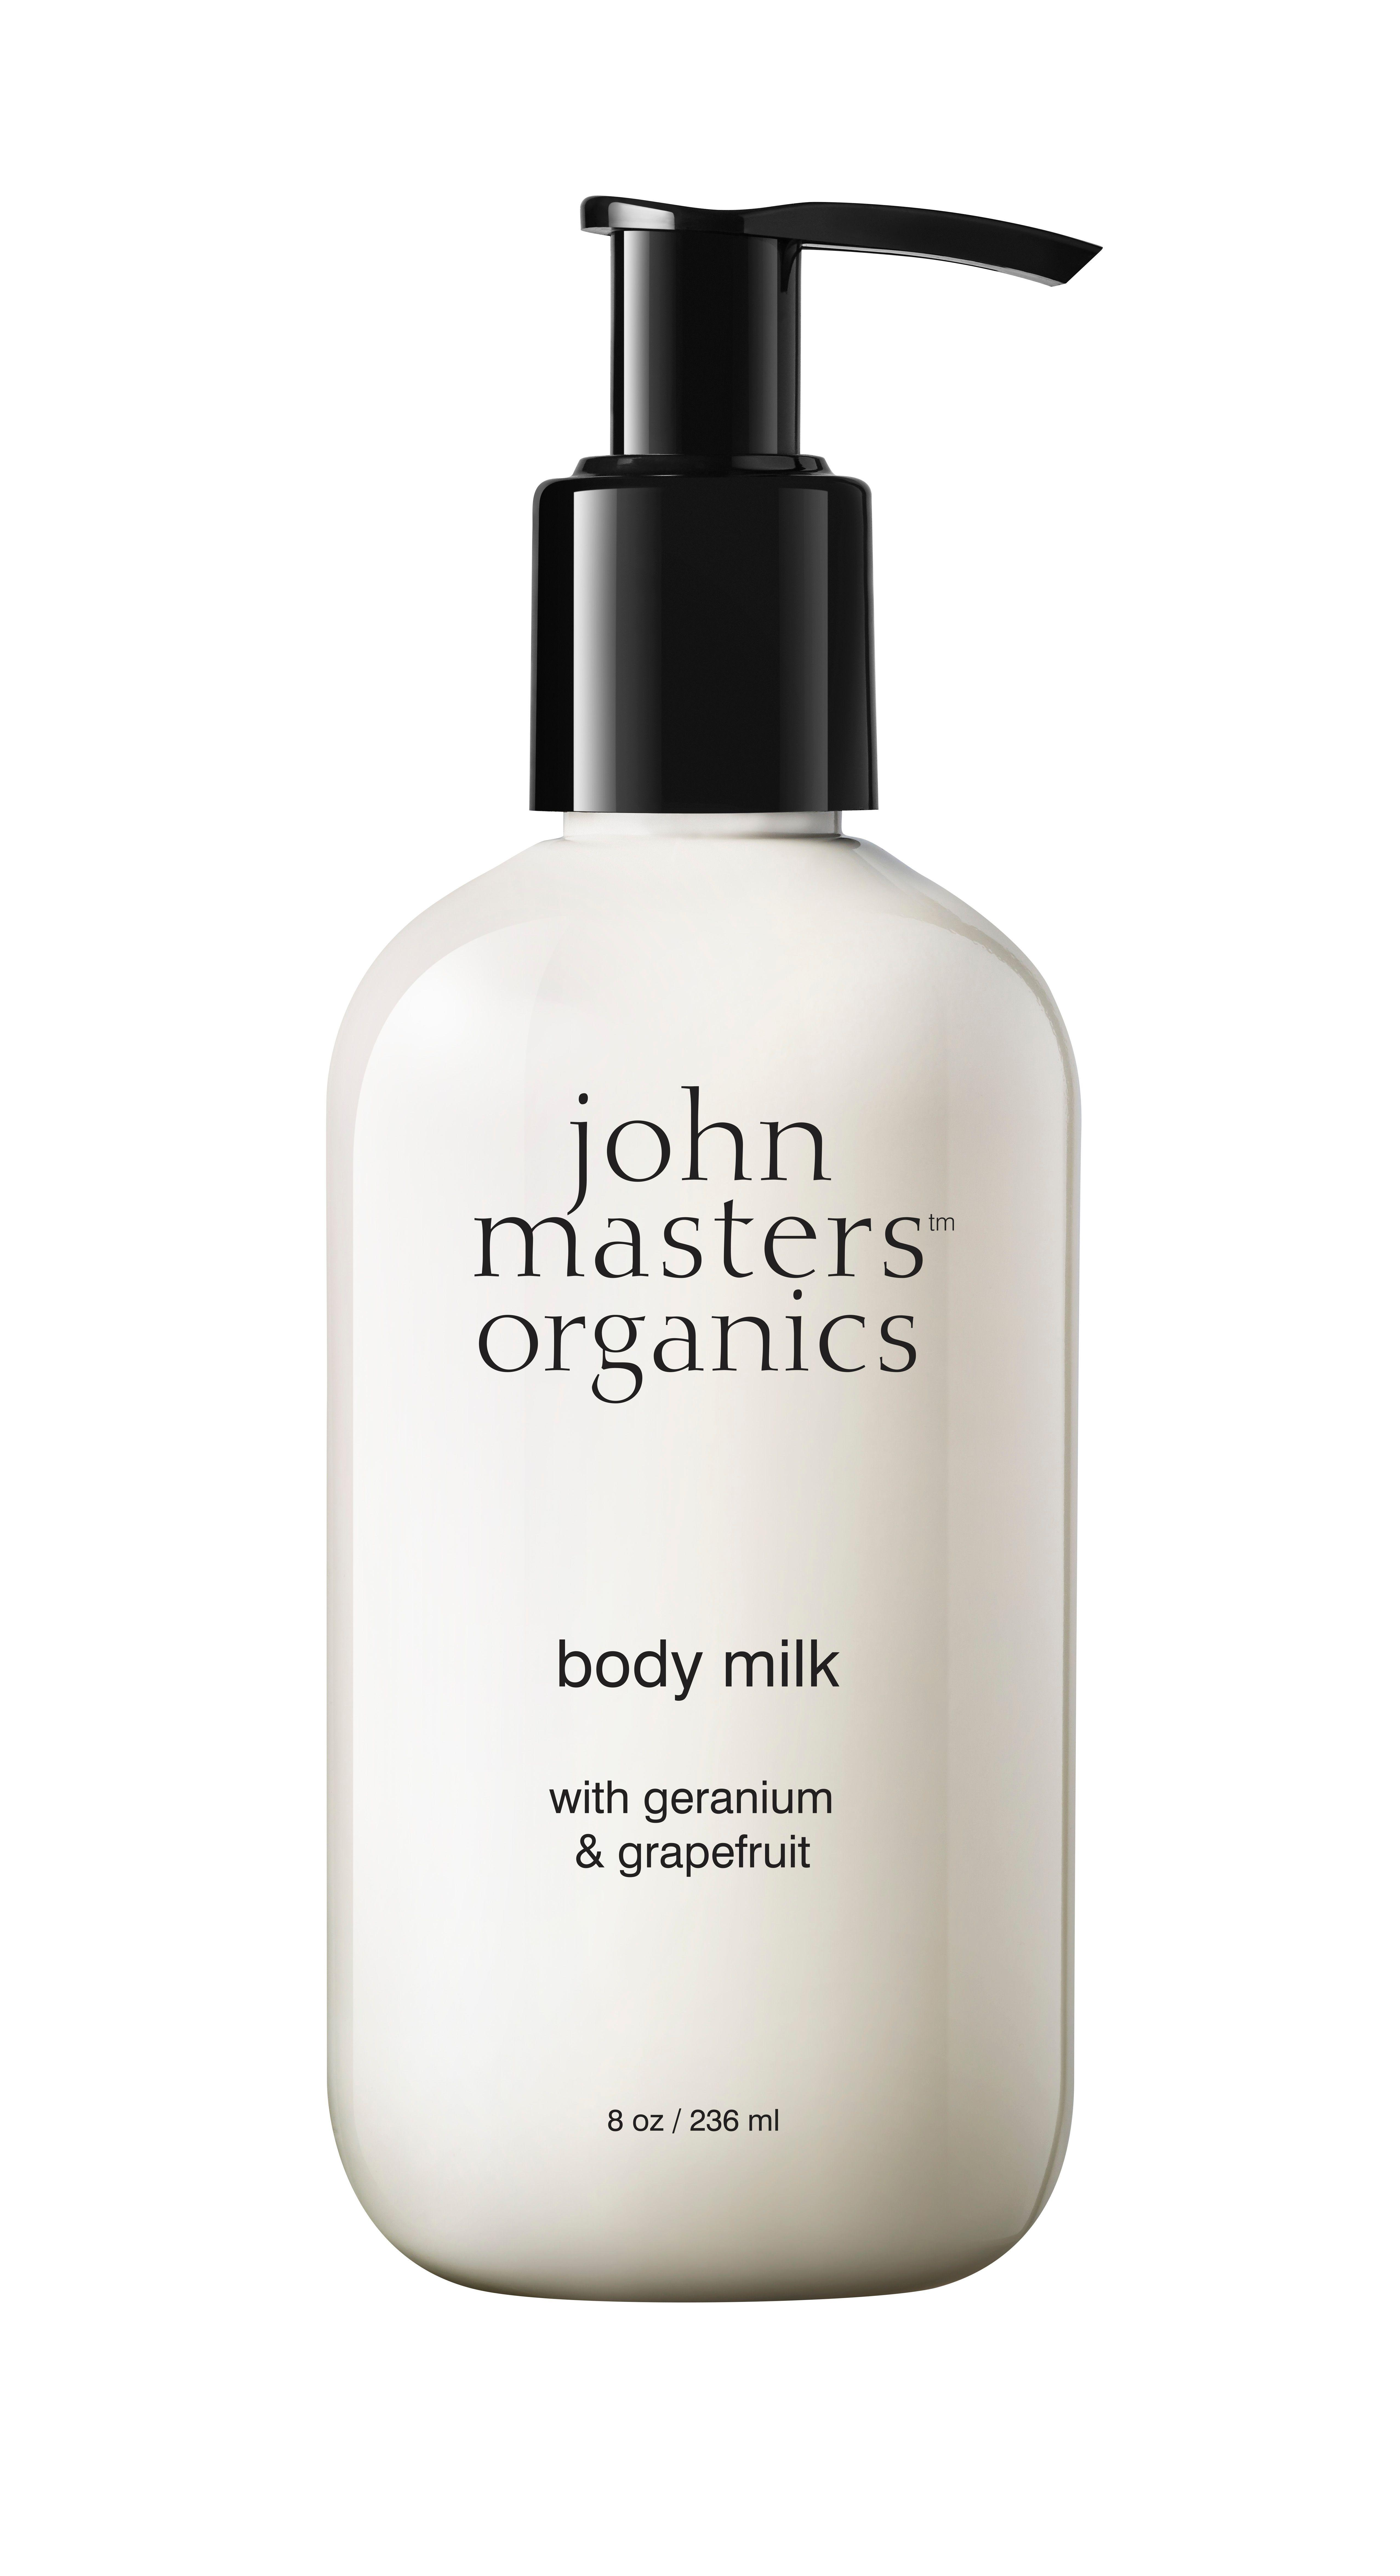 Body Milk with Geranium Grapefruit